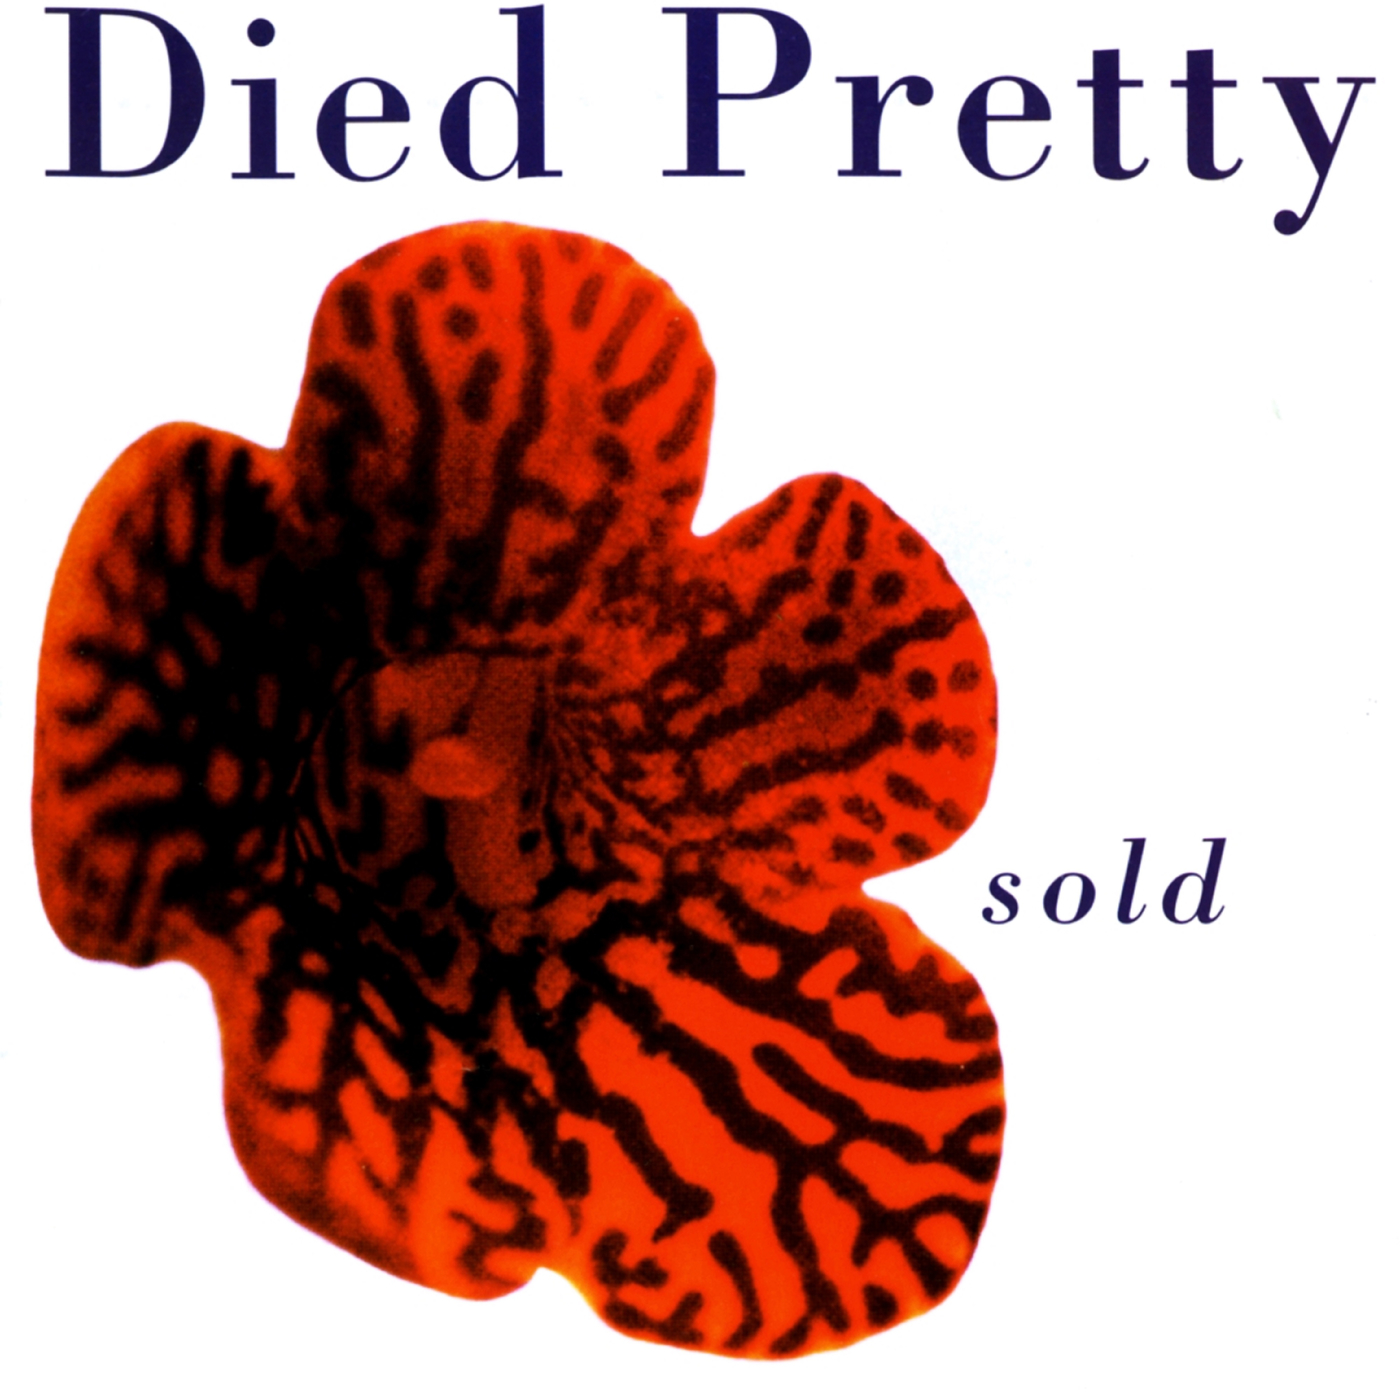 Sold - Died Pretty